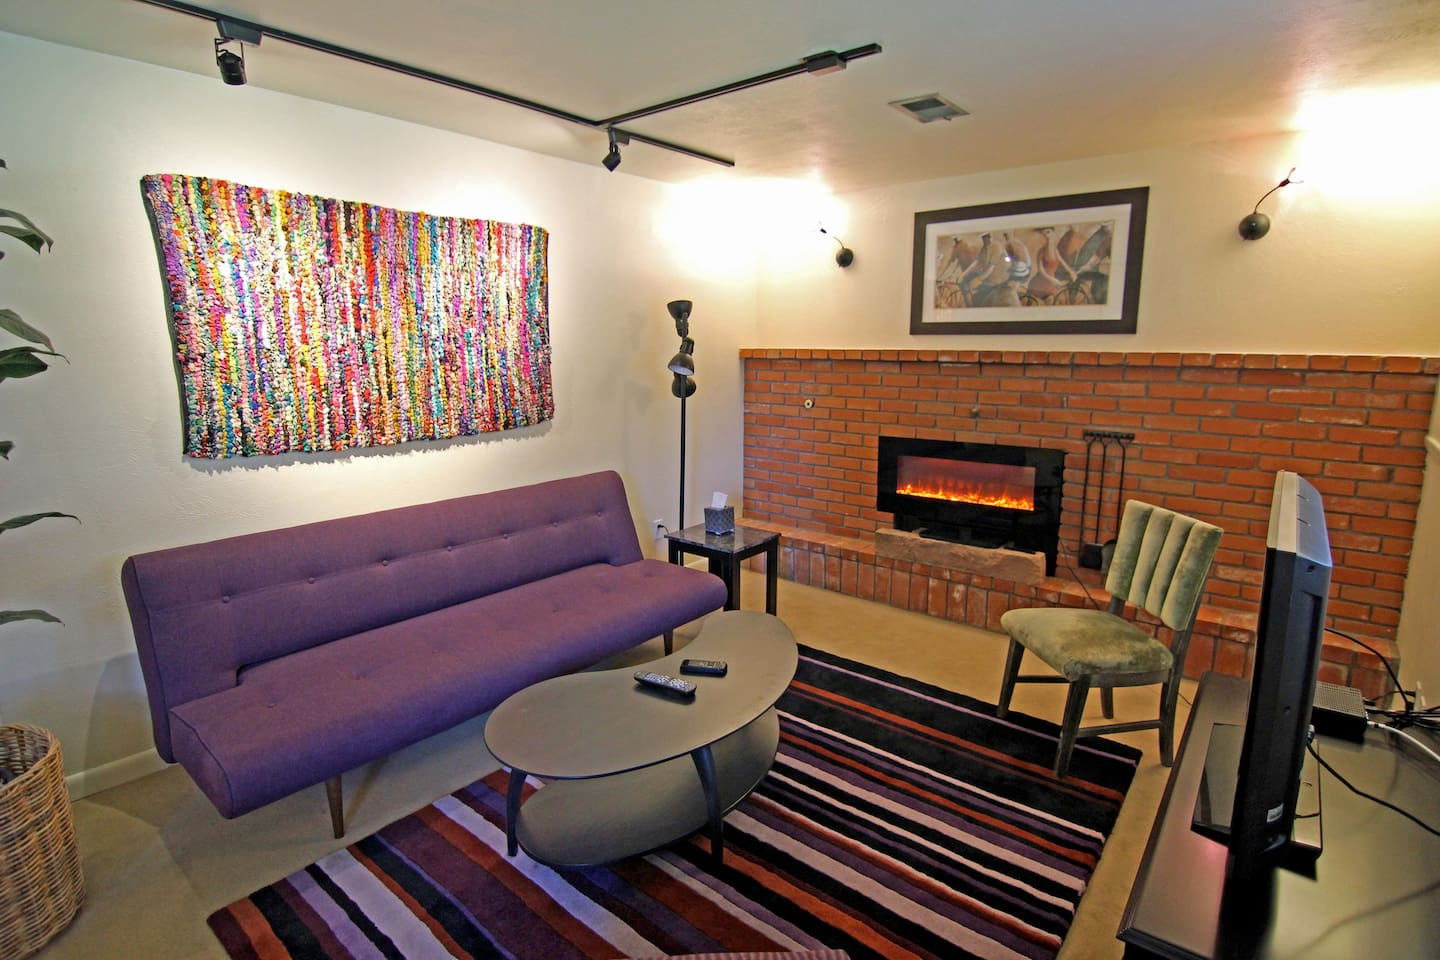 Comfy sitting area with electric fire, satellite TV, and reading lamp. Couch becomes full-size bed.